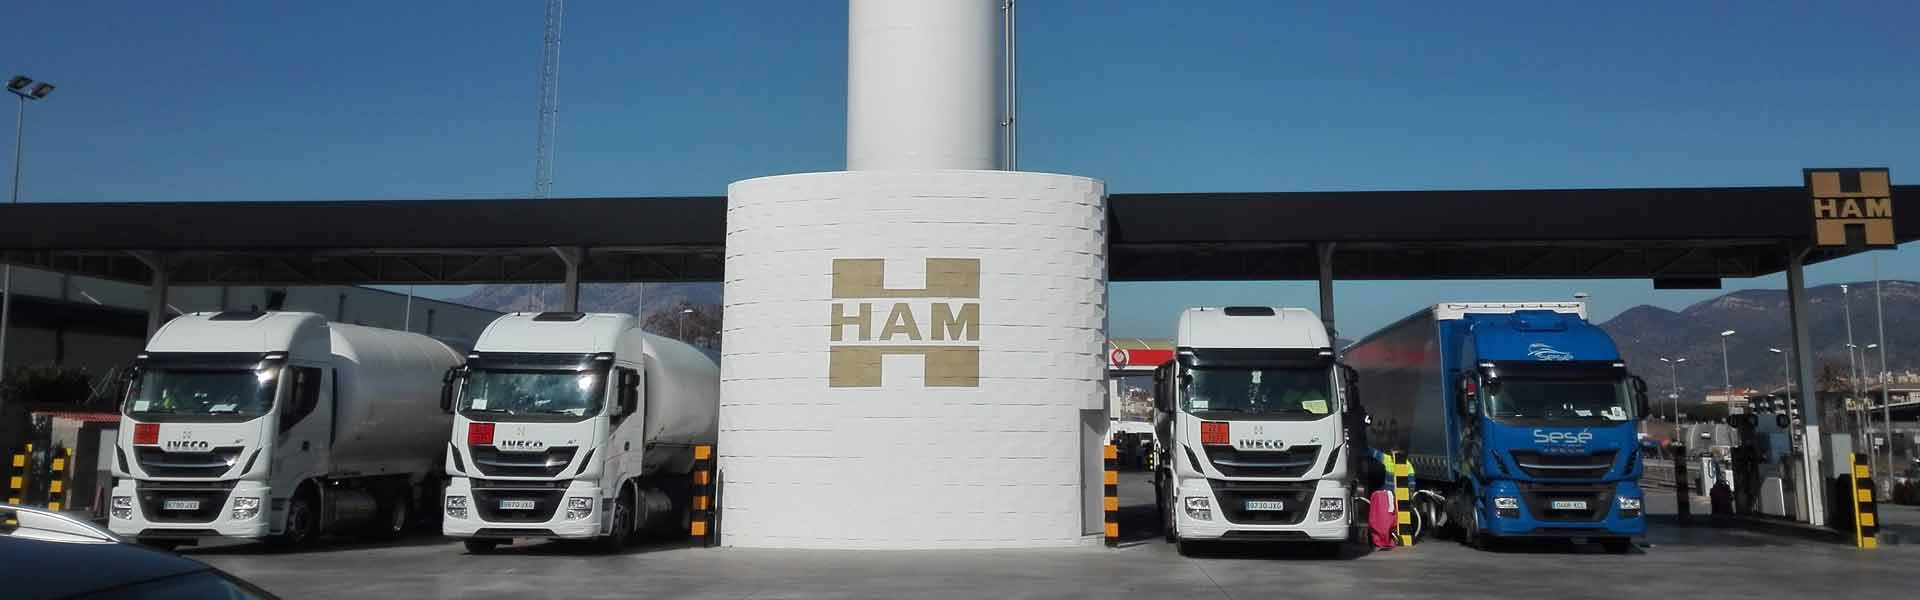 Stations-service Groupe HAM GNL-GNC Groupe HAM-LNG France